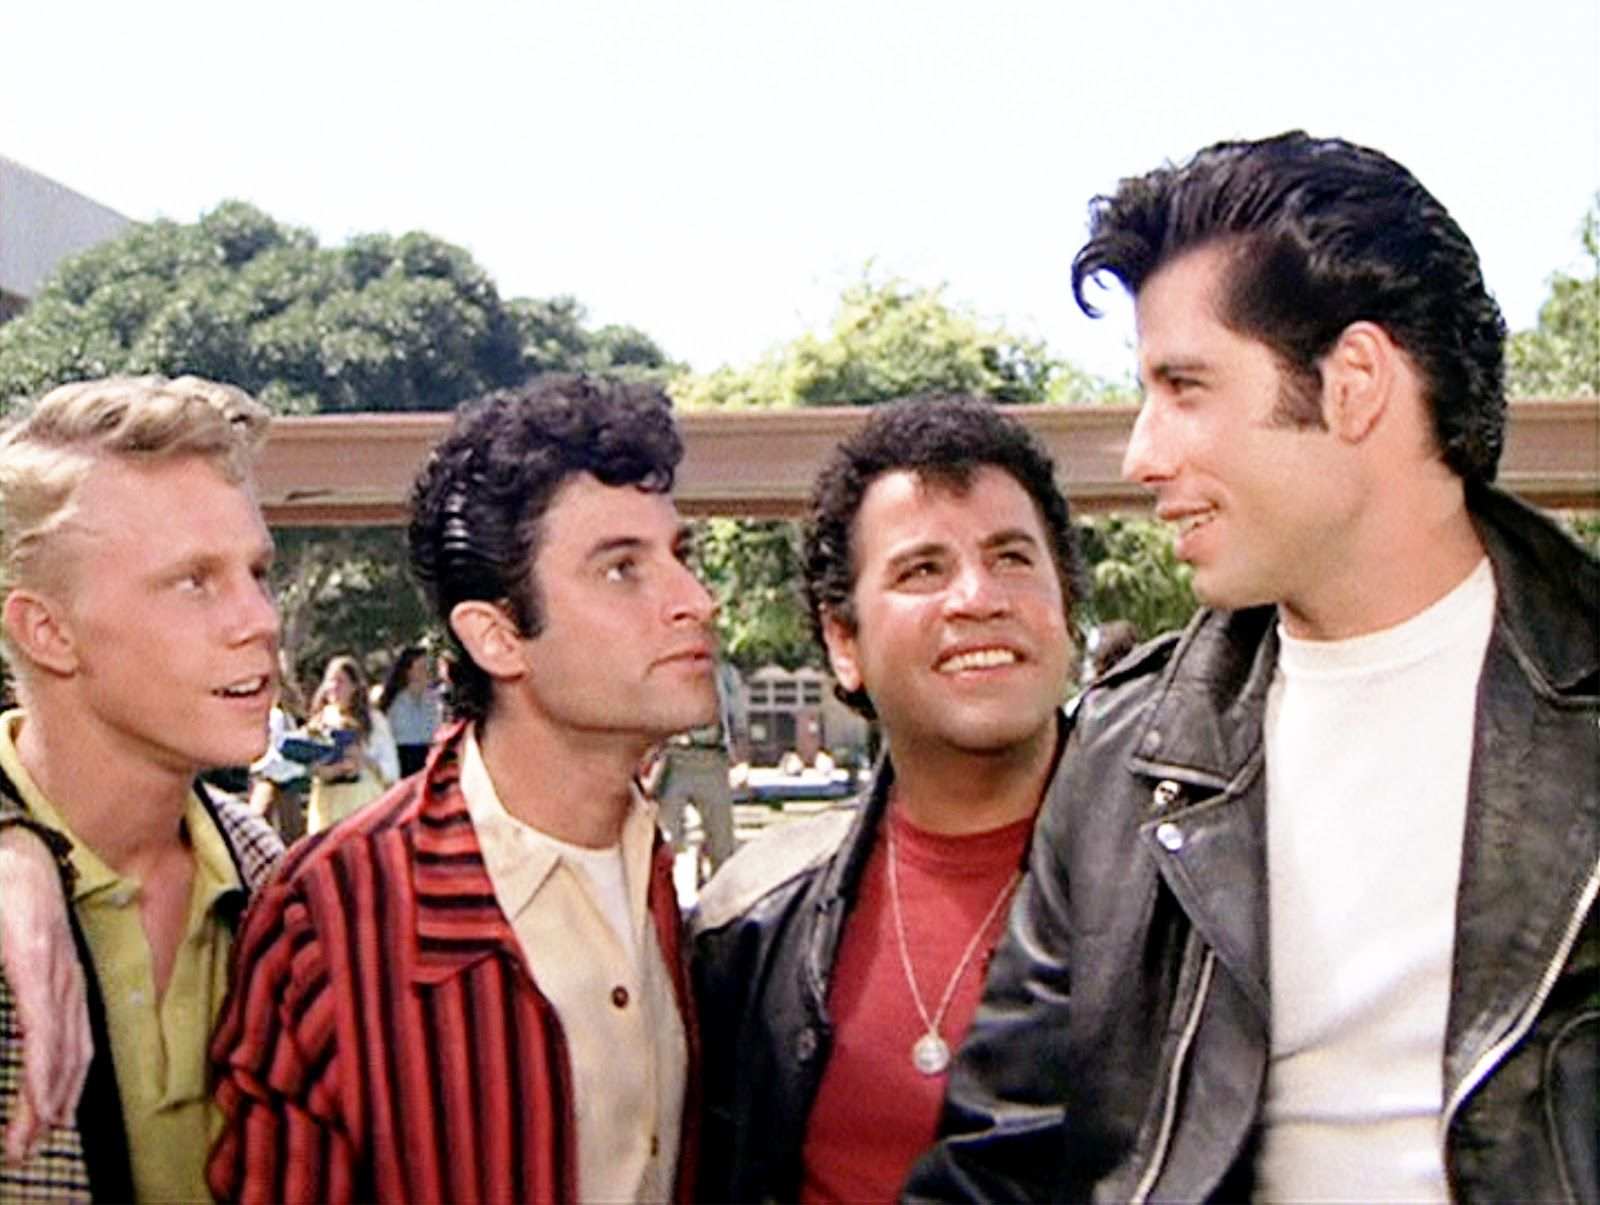 grease movie - Google Search | Grease movie, Greece movie, Grease ...